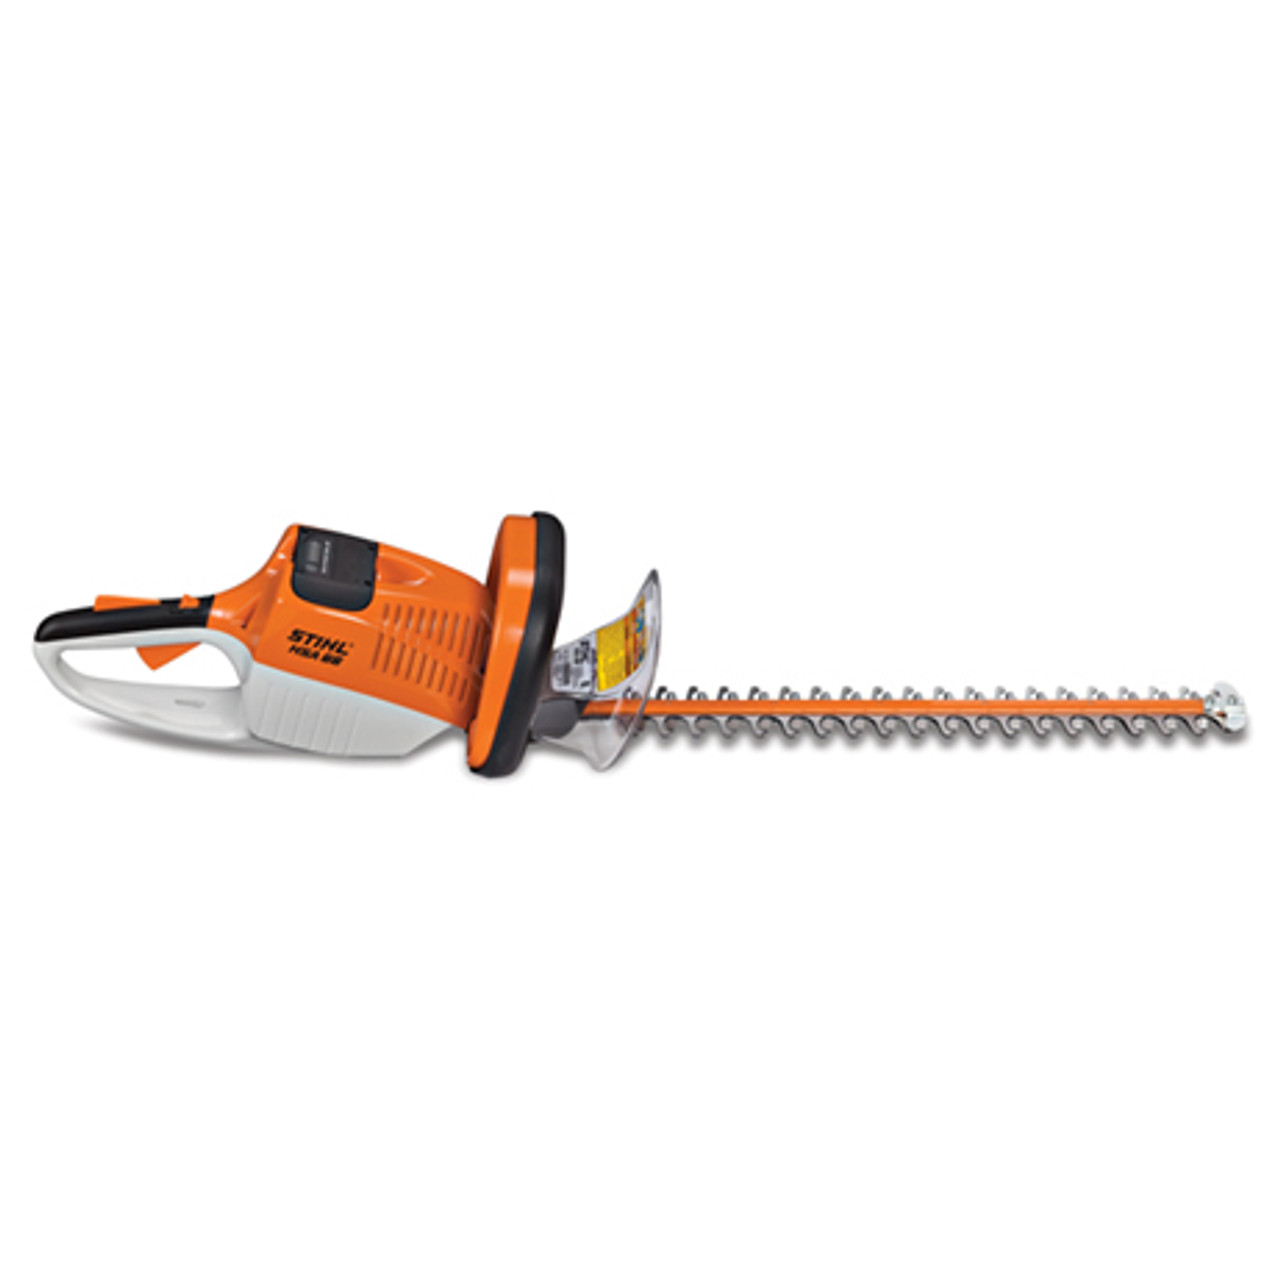 """STIHL HSA 66 Battery-Powered Hedge Trimmer w/ 20"""" Double-Sided Blade (Battery & Charger Not Included) Image"""